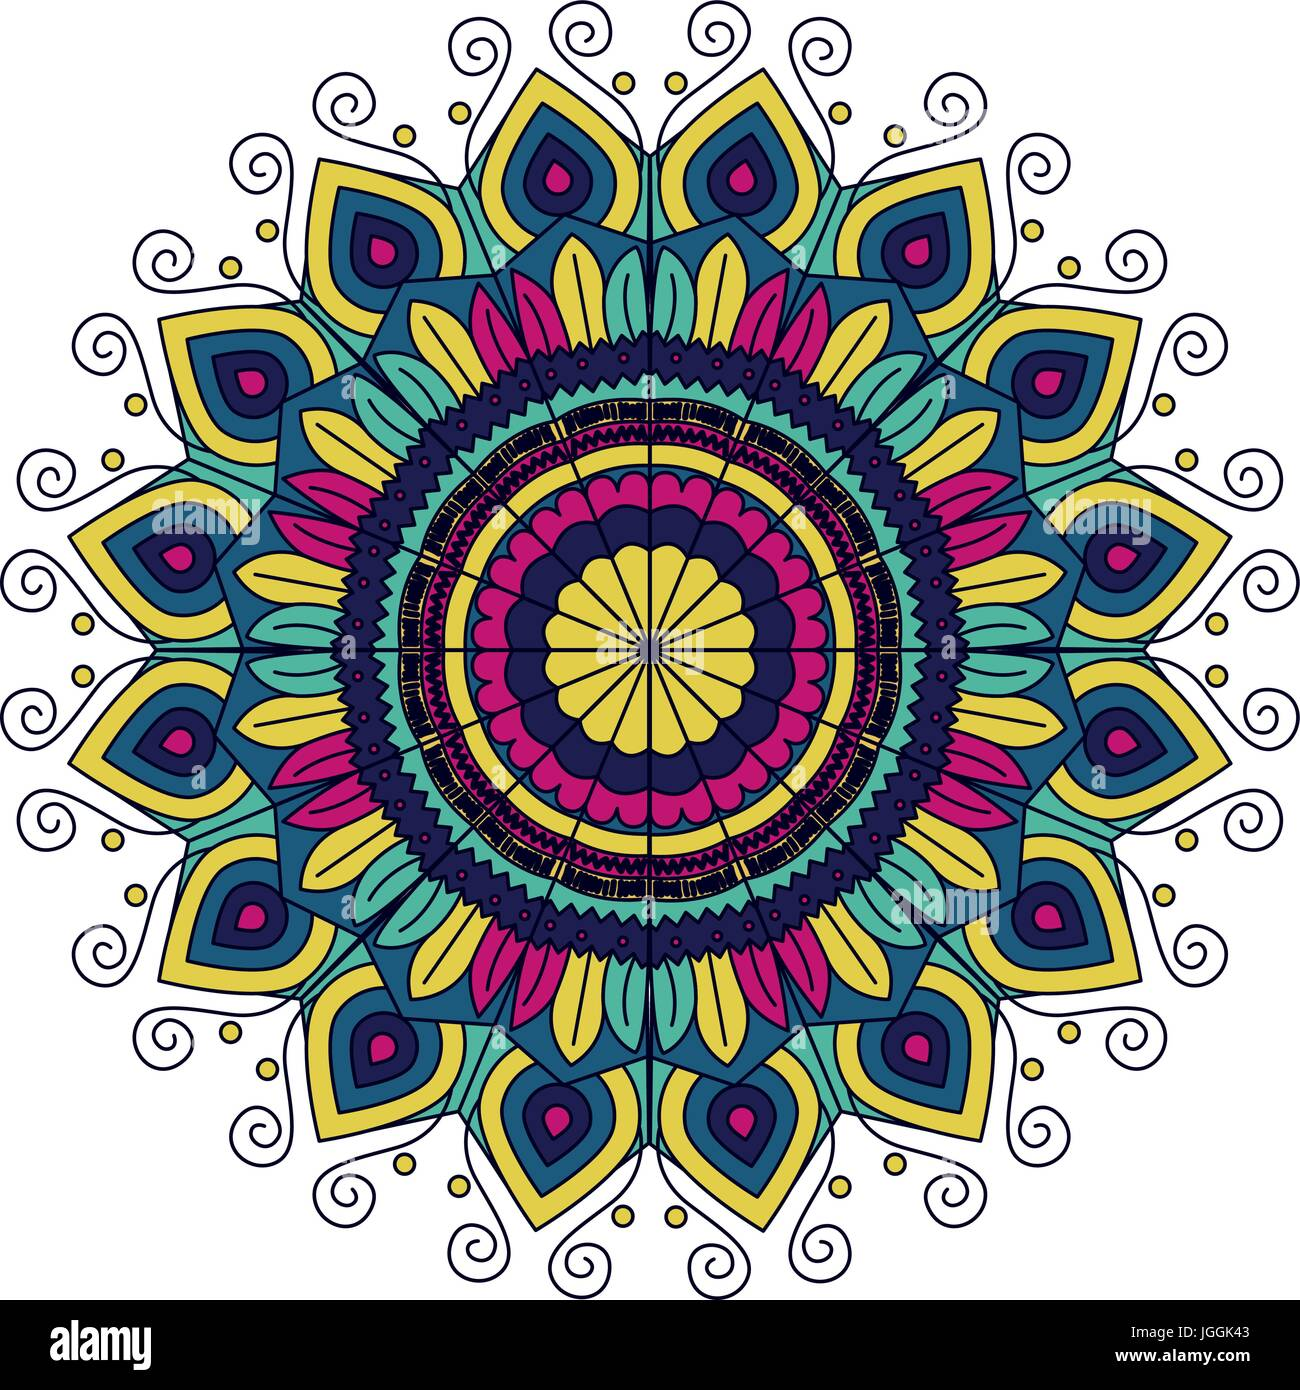 White Background With Silhouette Color Flower Mandala Vintage Decorative Ornament